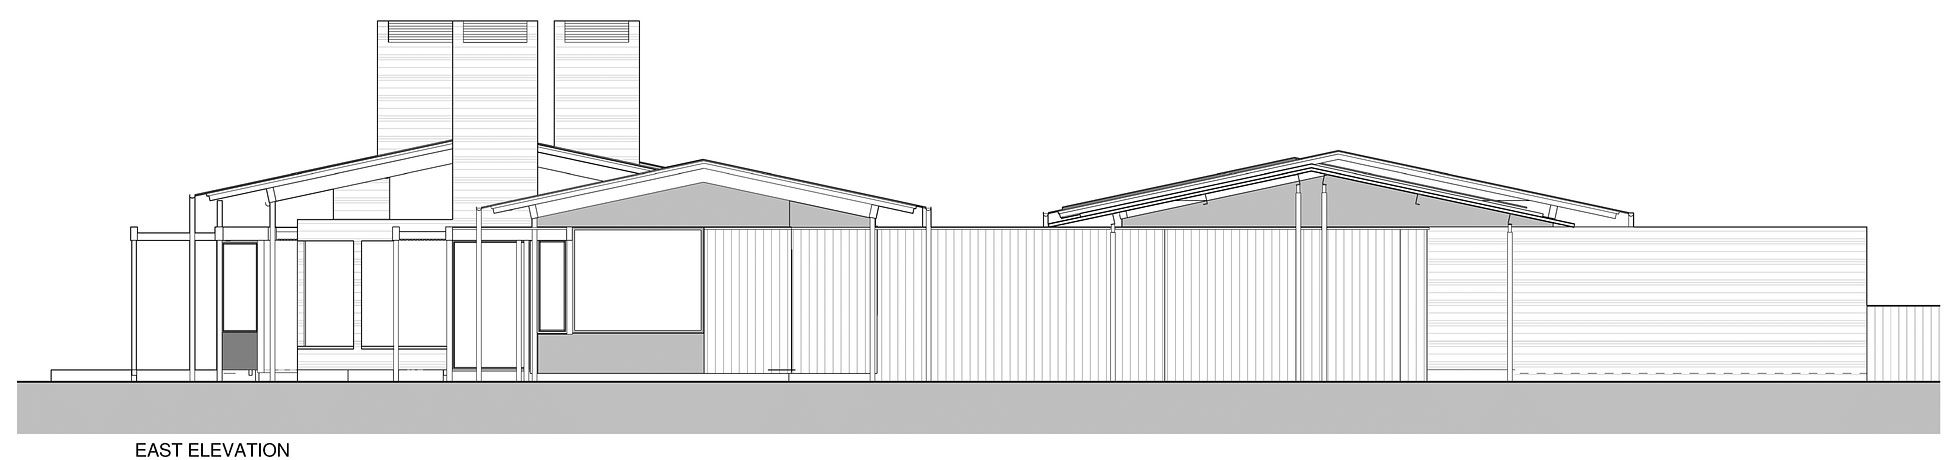 East Elevation, Wairau Valley House in Rapaura, New Zealand by Parsonson Architects